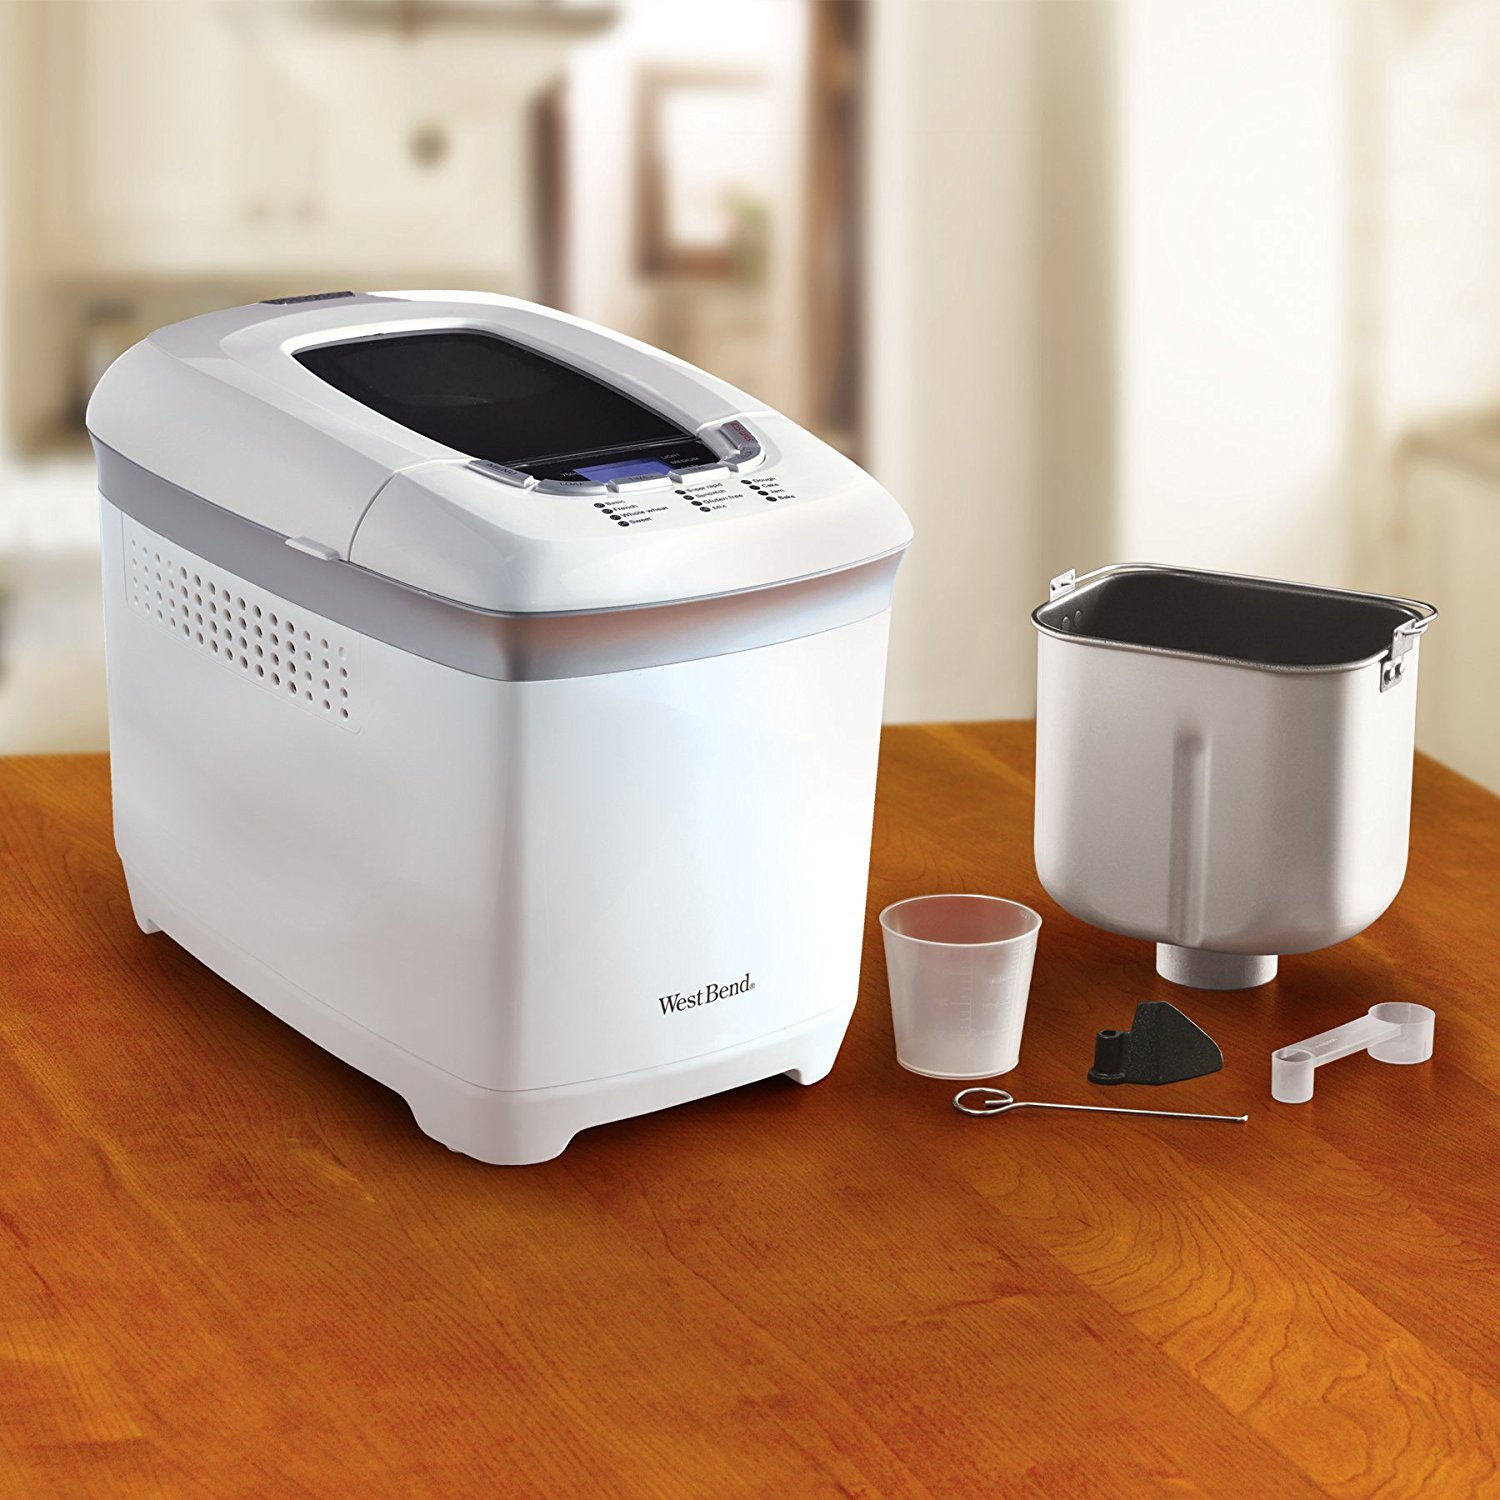 West Bend breadmaker